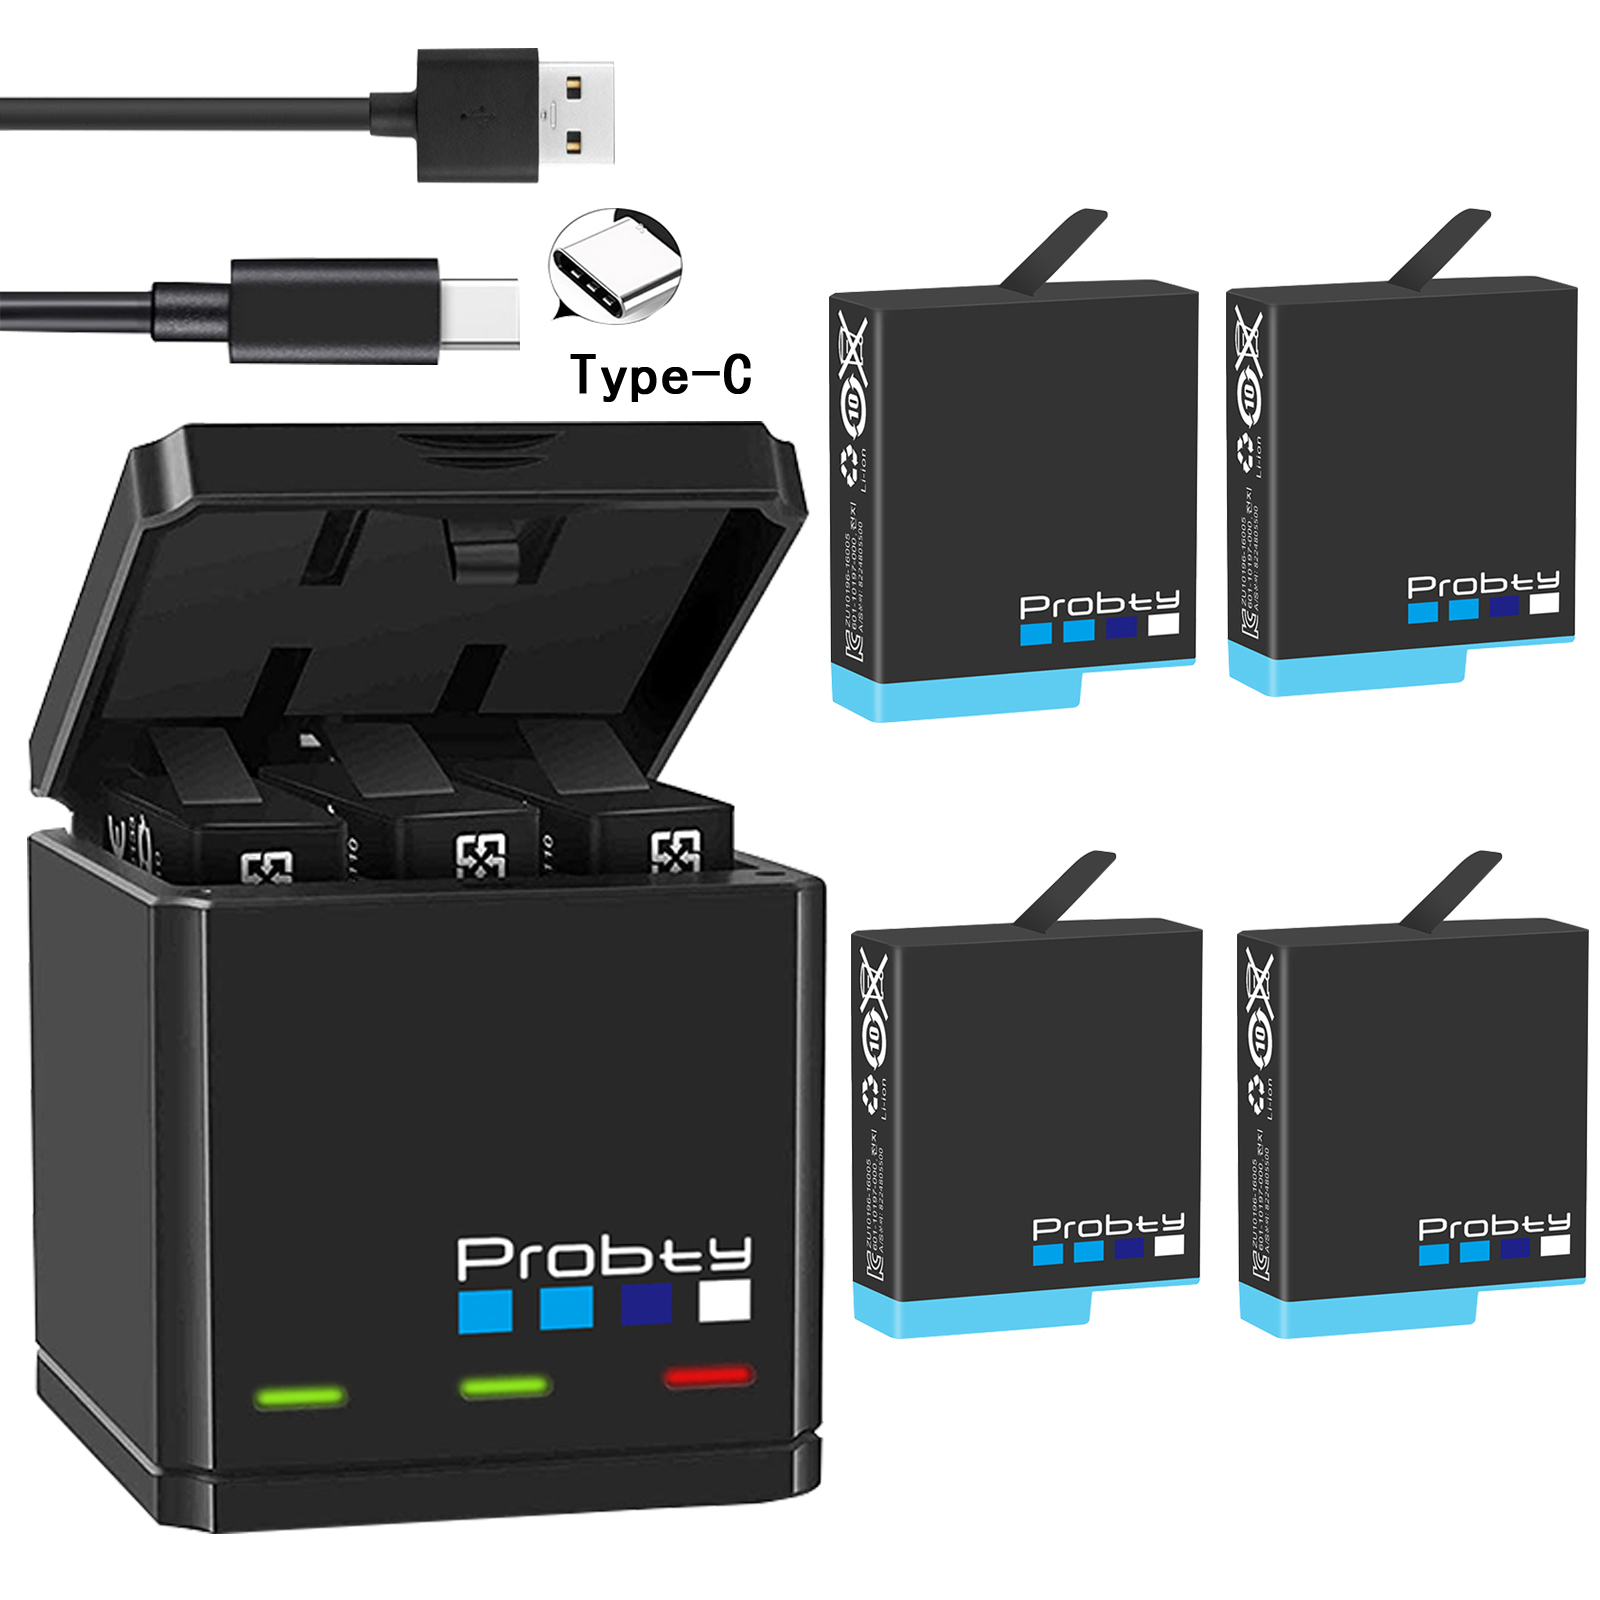 Original probty for GoPro Hero 8 hero 7 hero 6 Black Batteries or Triple Charger Charger